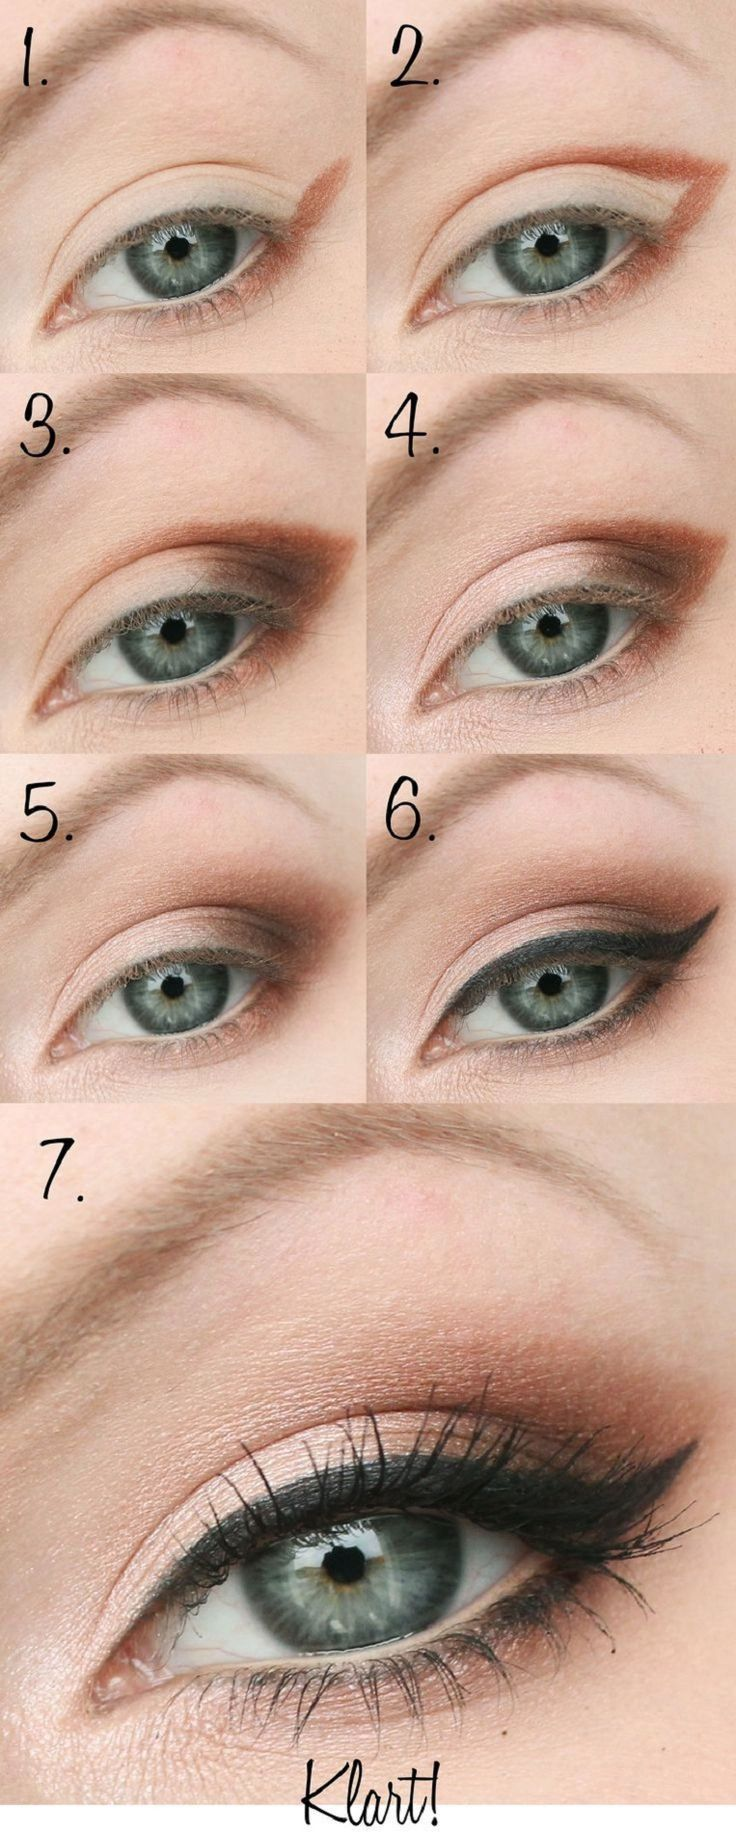 10 Eye Makeup Ideas That You Will Love1